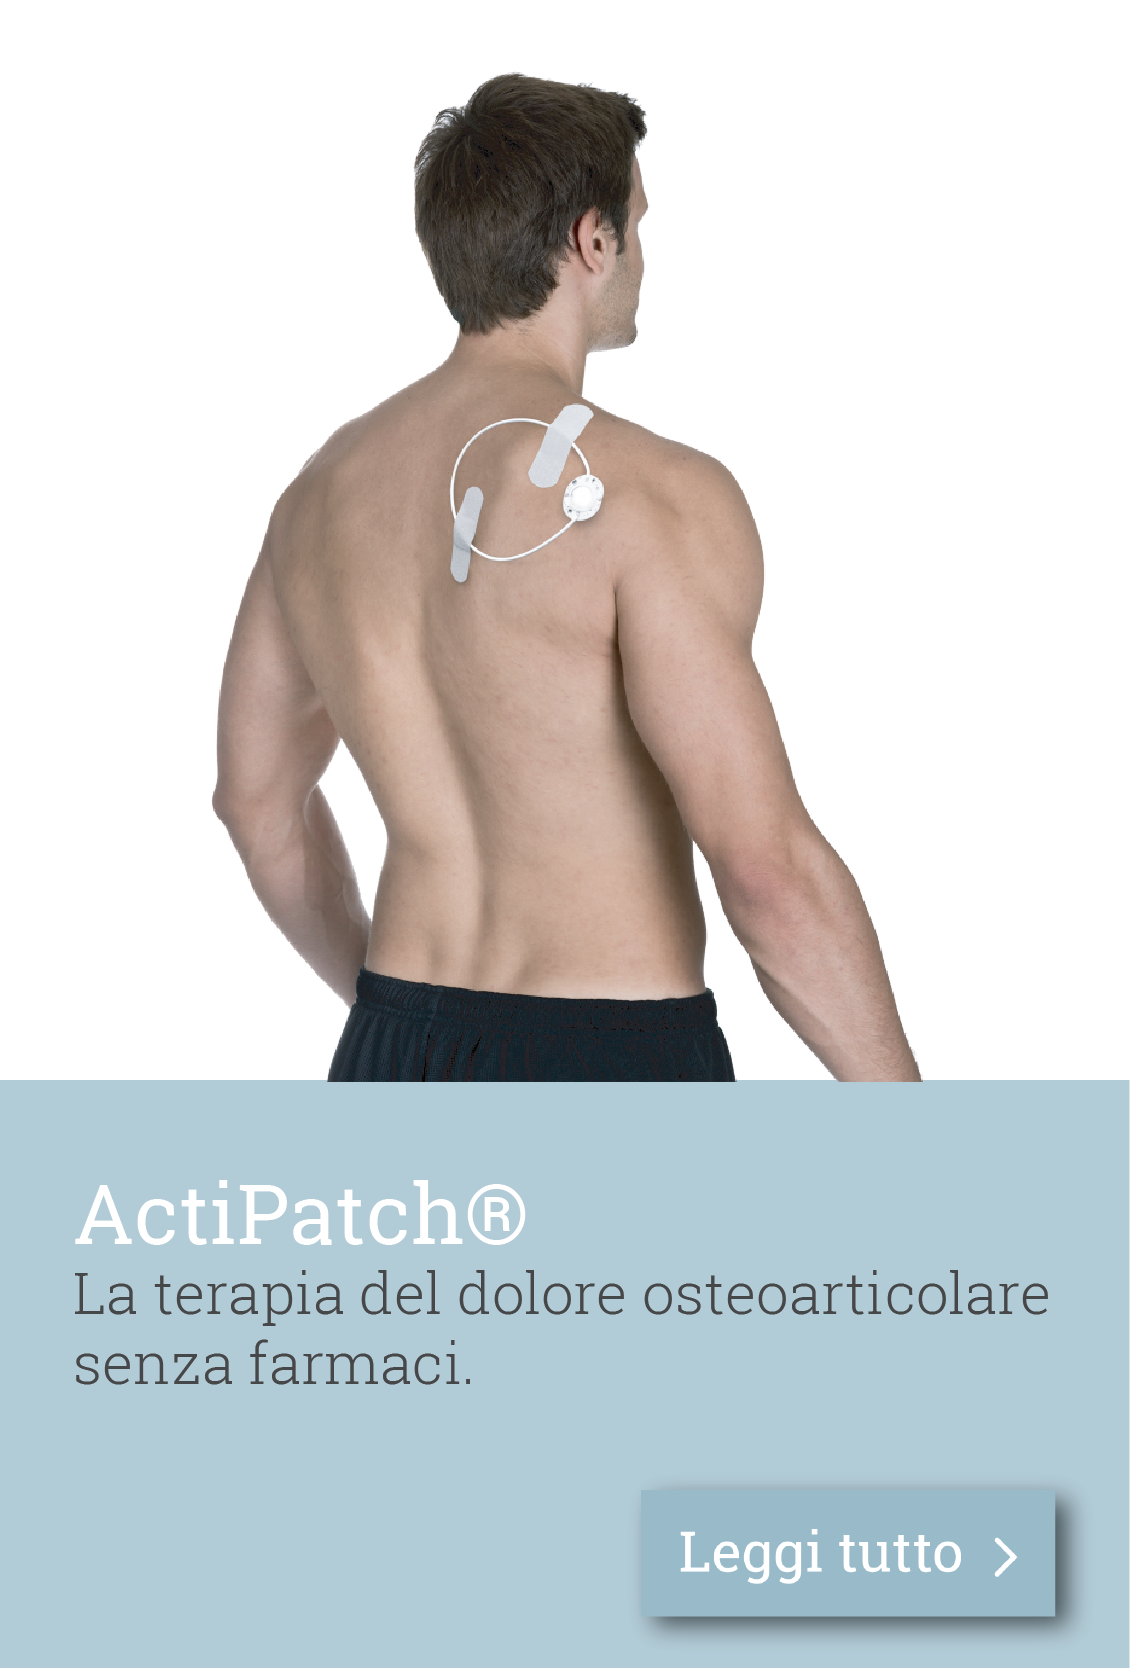 ActiPatch®